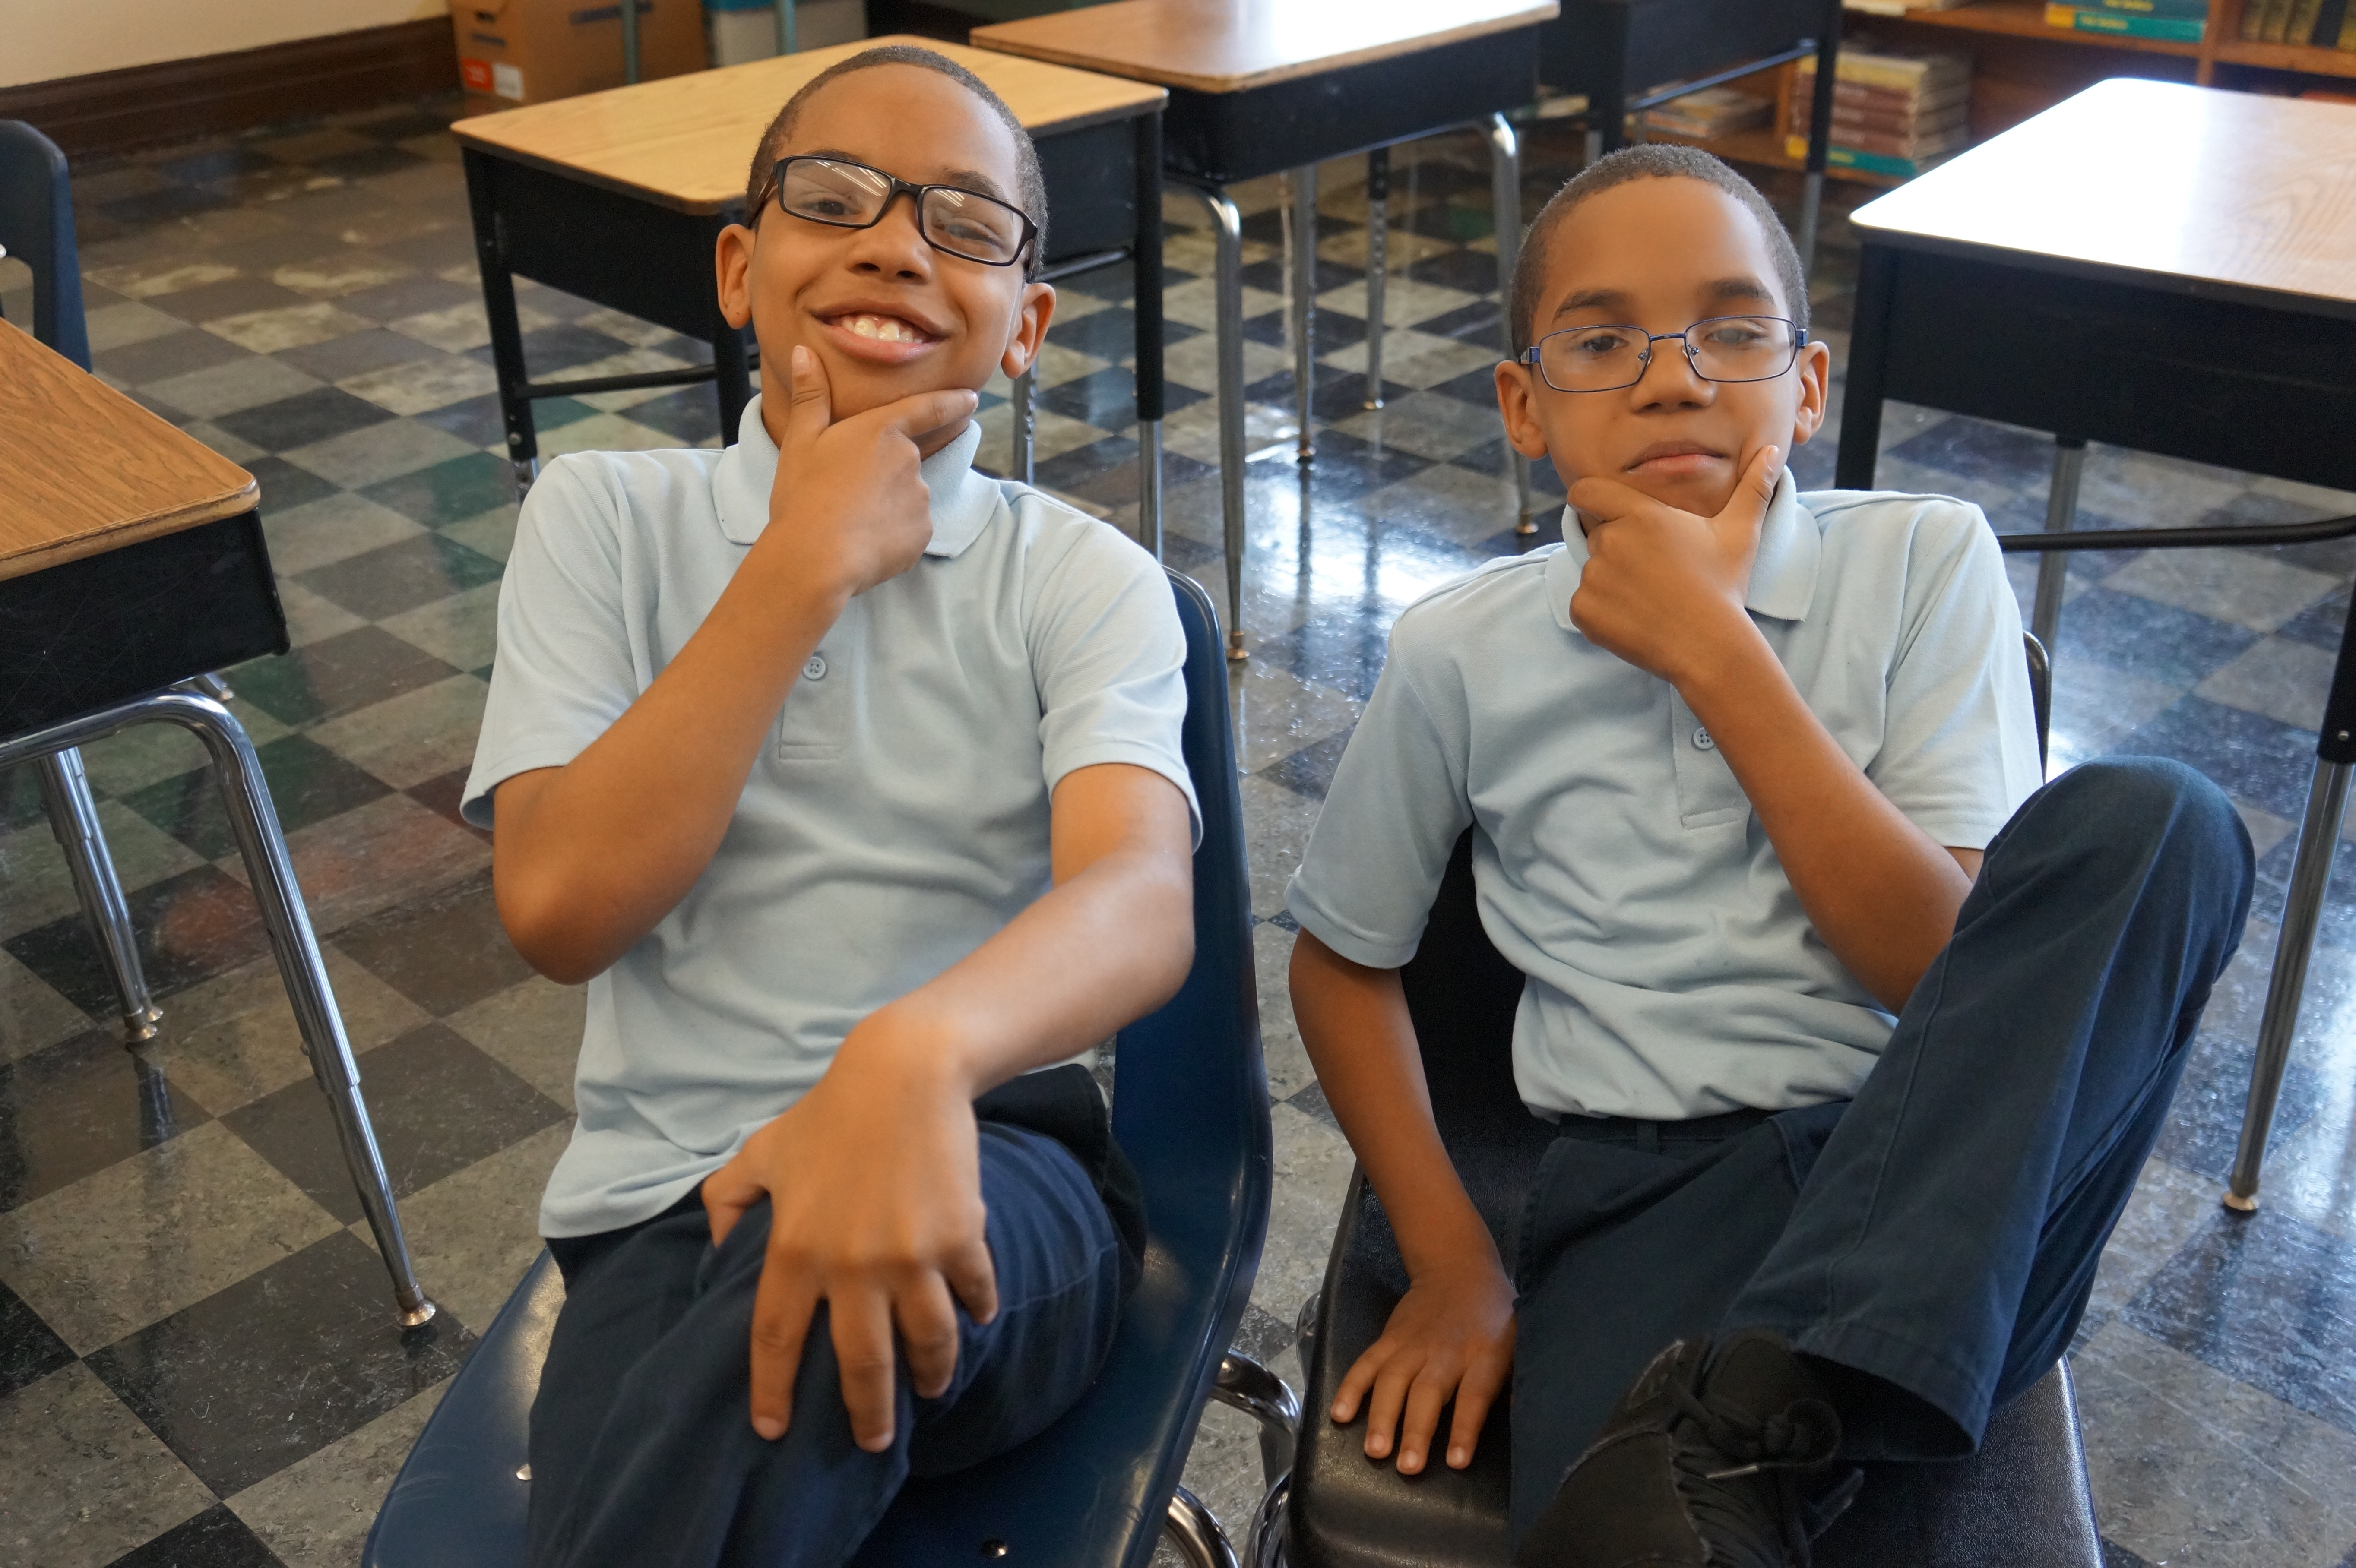 Brian (left) and Shaun take a break from math equations to pose for a picture. (Kira Latoszewski, 14 East)